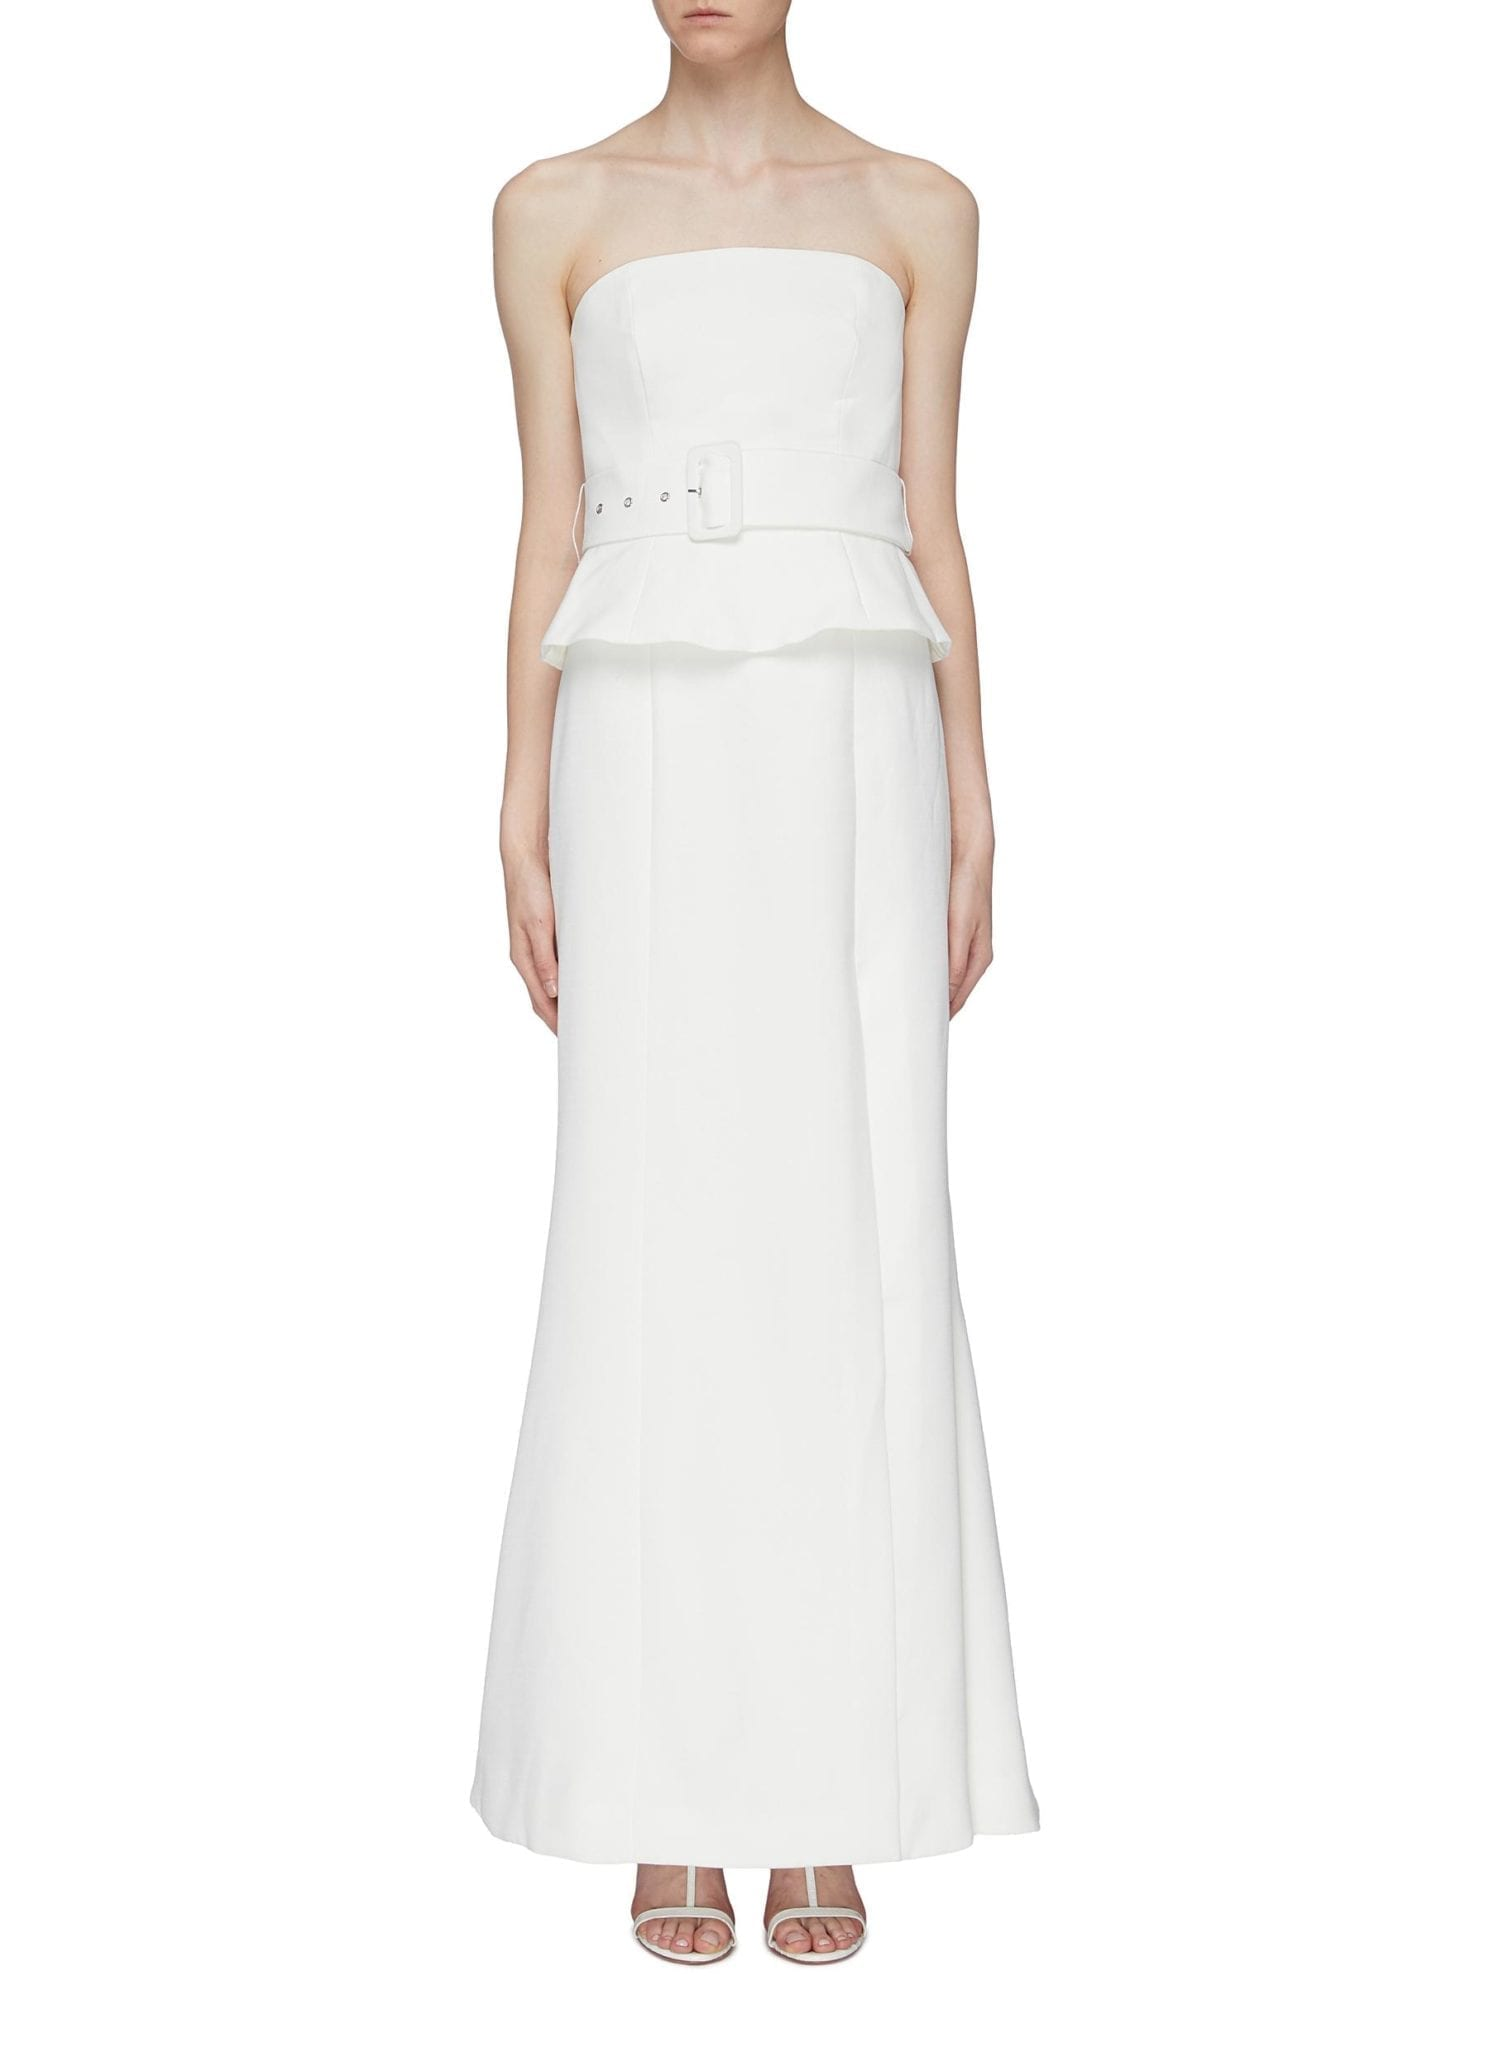 C MEO COLLECTIVE 'mode' Belted Peplum Strapless Gown